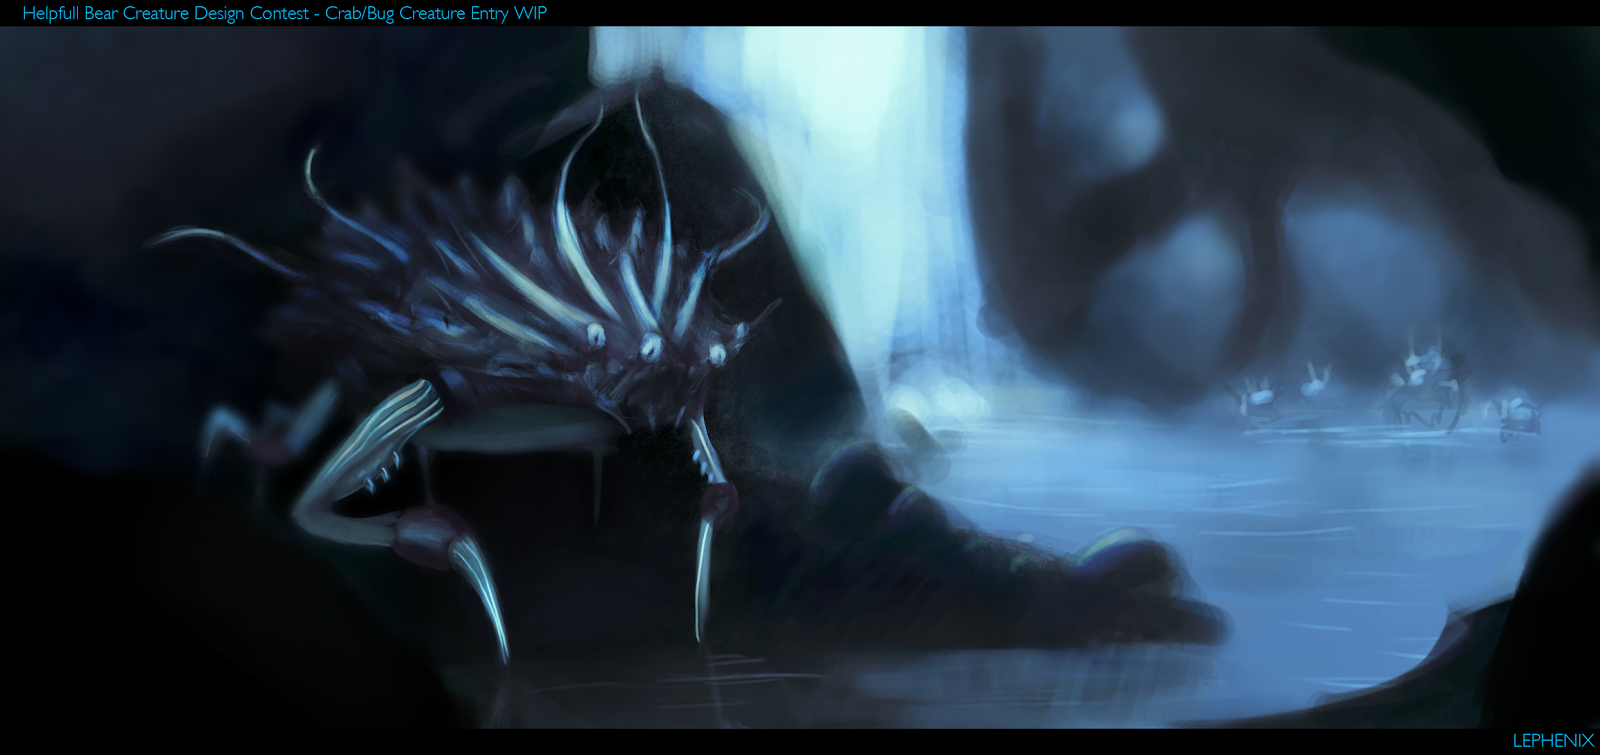 Creature%2BDesign%2BContest%2BCrab%2BPainitng%2BWIP%2Bby%2BLephenix.png